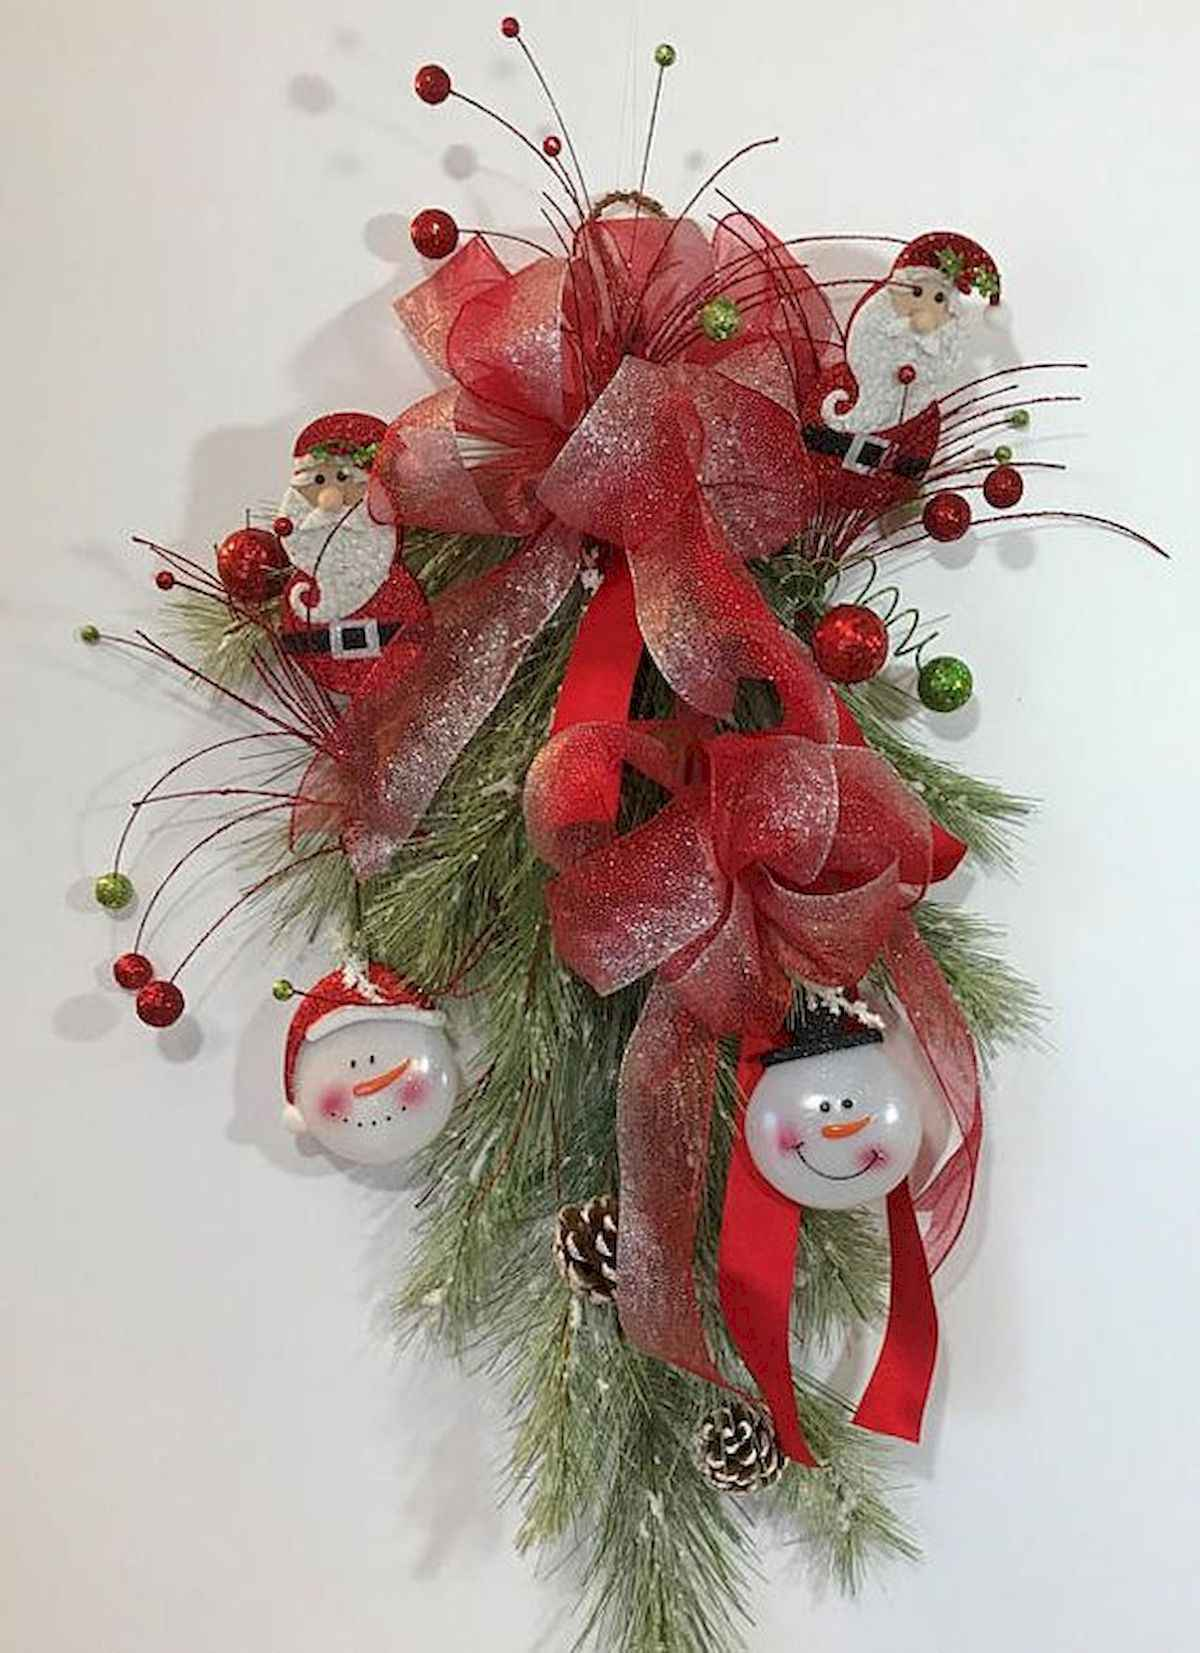 60 awesome wall art christmas ideas decorations (17)